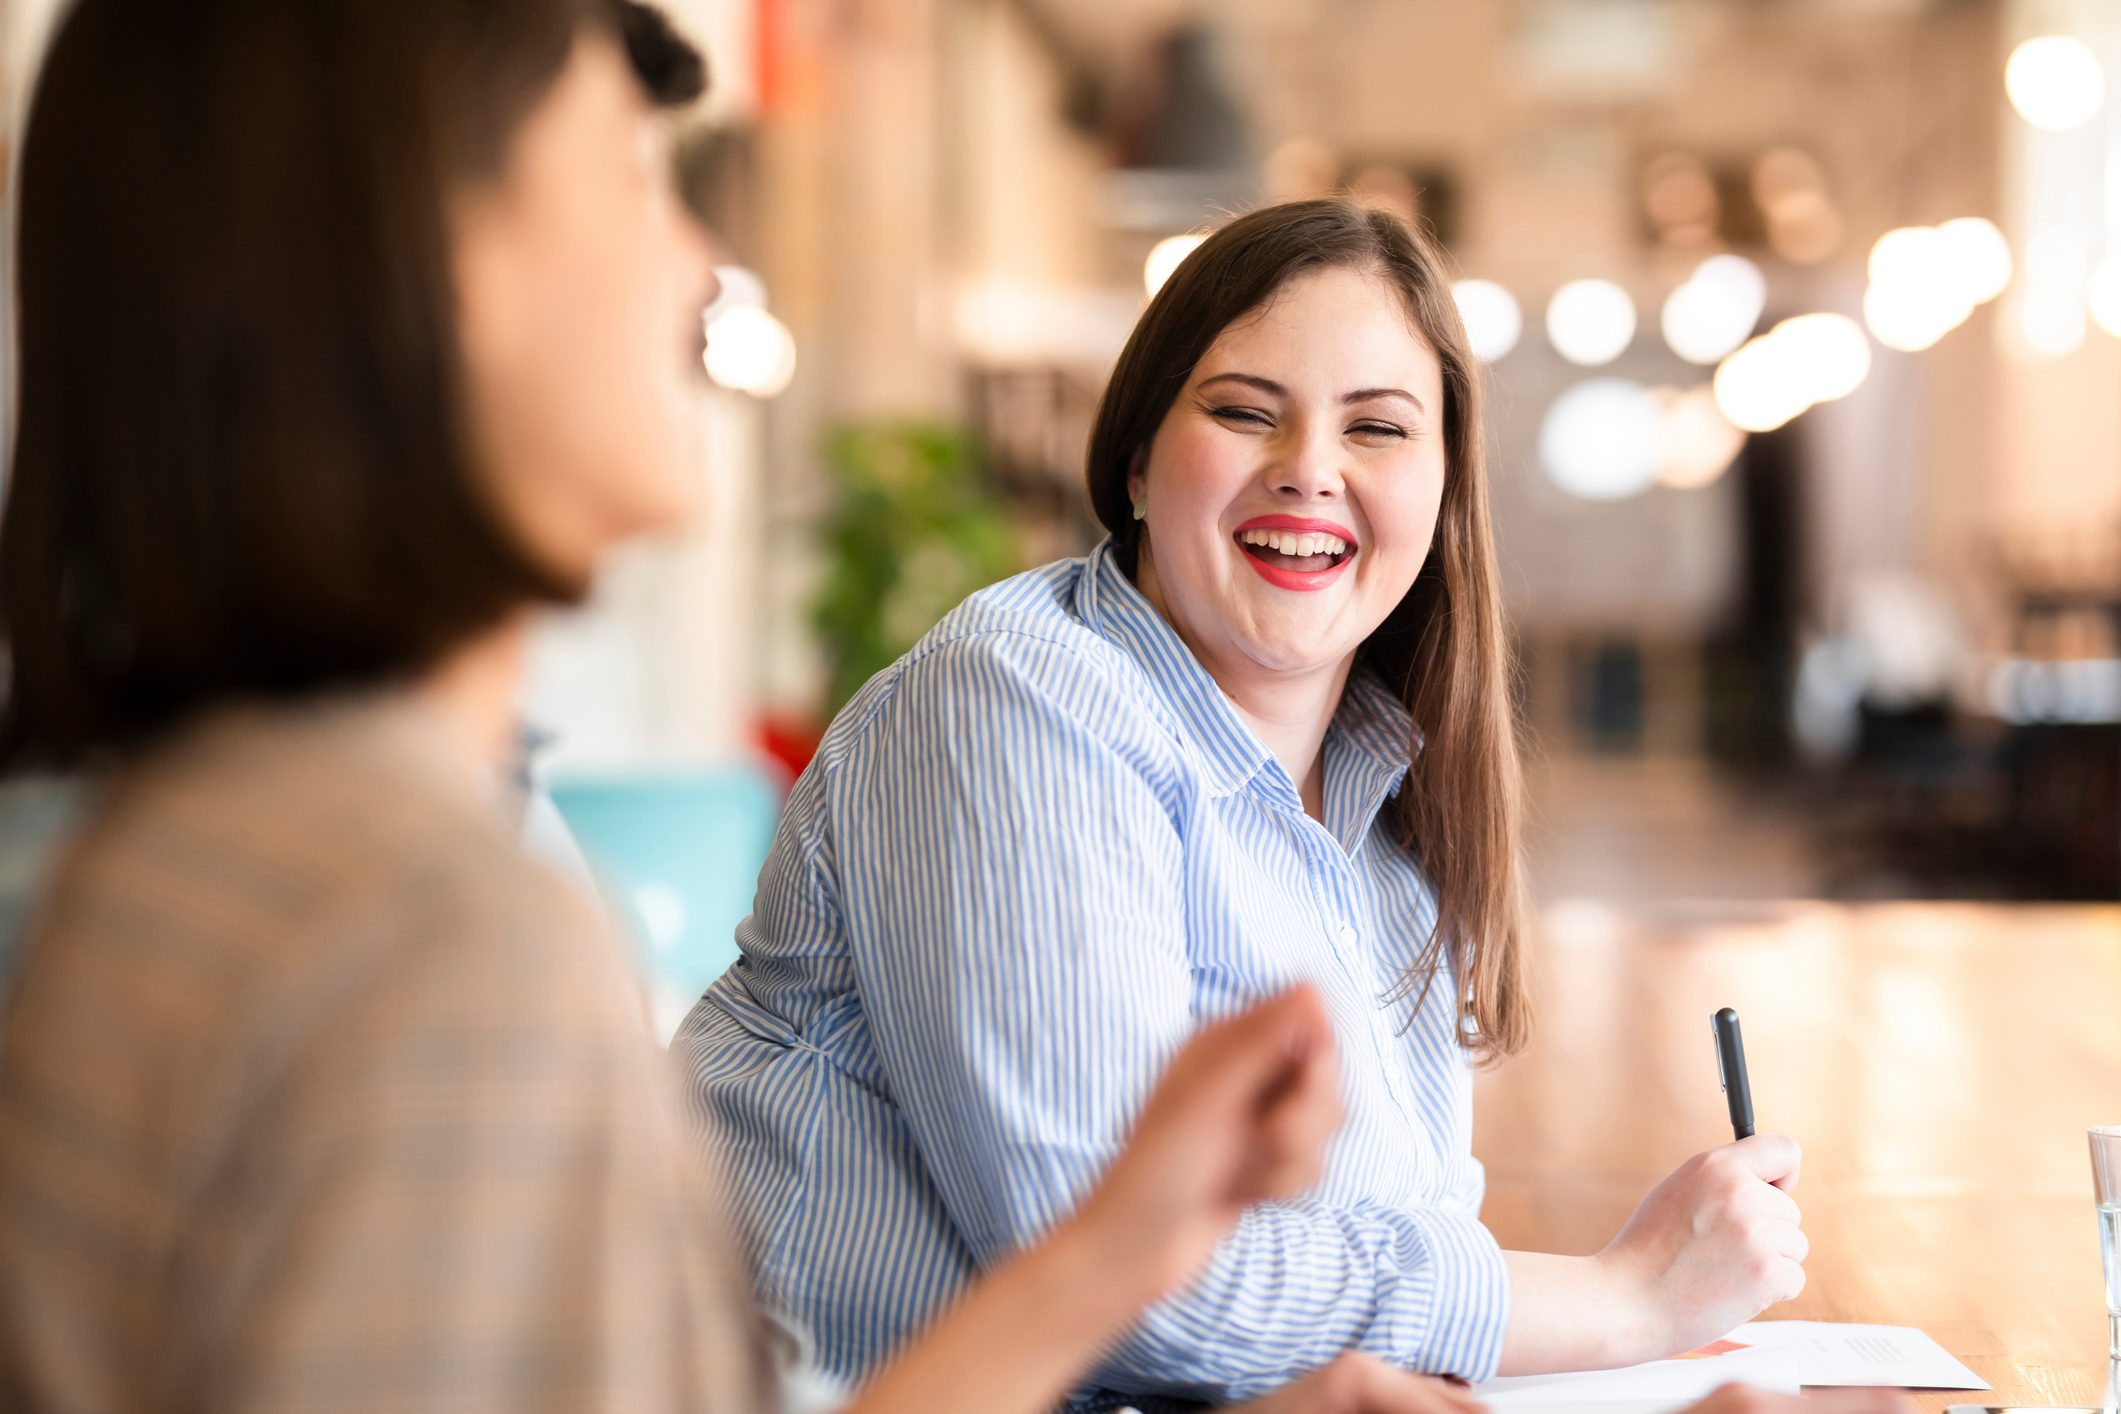 Fun Times at Work: Young Plus Size Businesswoman Sharing a Laugh With a Colleague at the Office